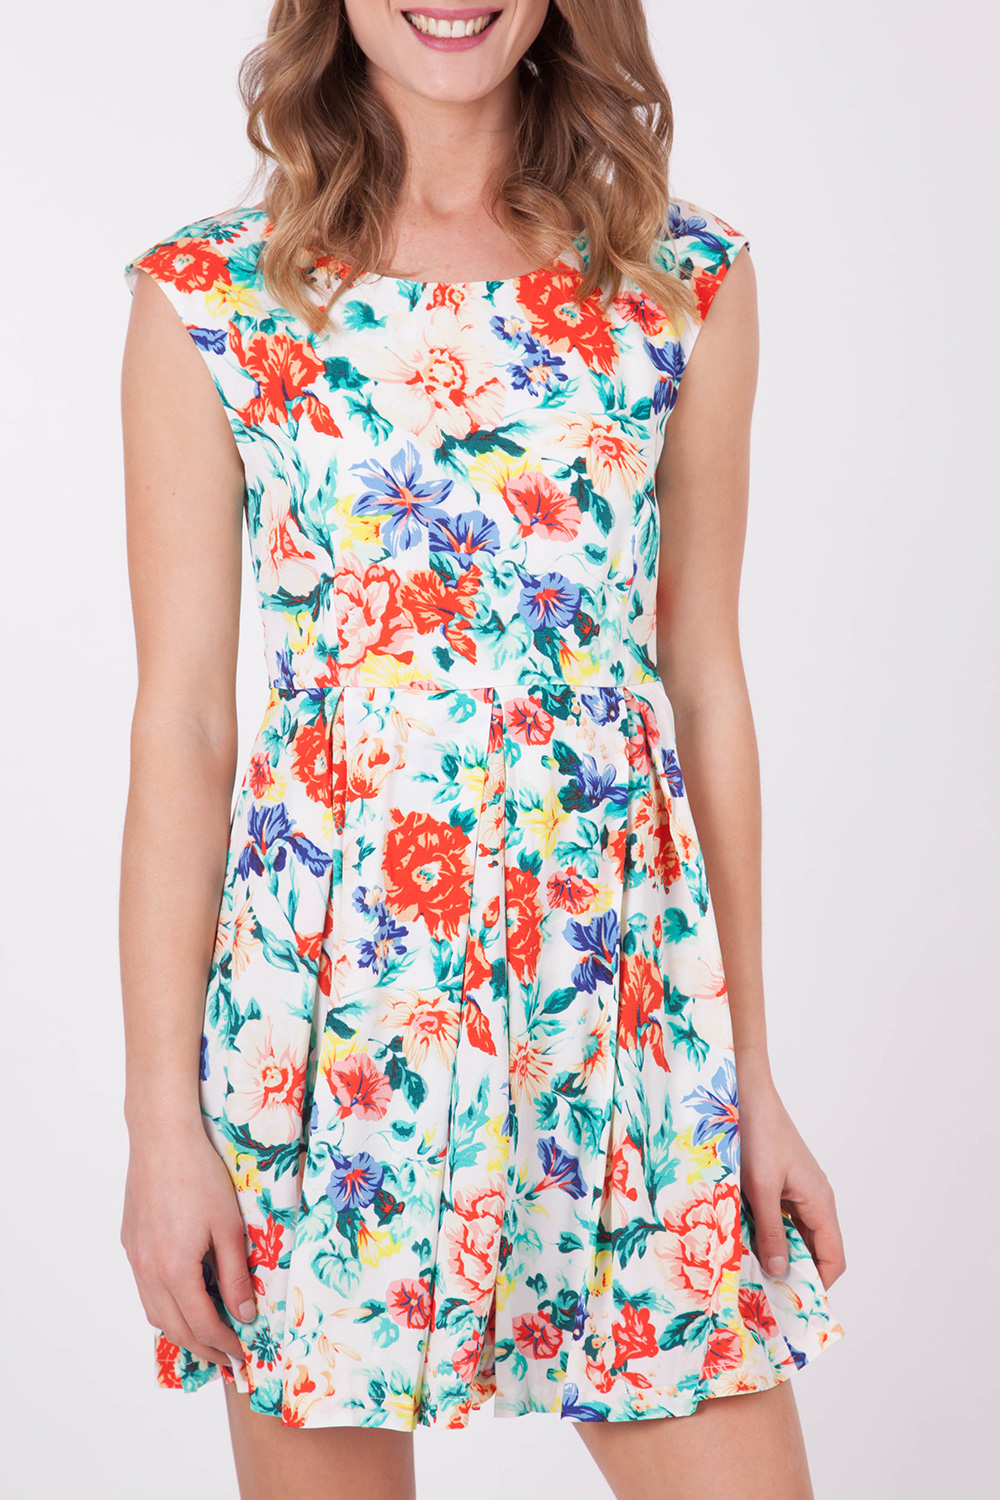 Mink Pink Acid Floral Woven Dress